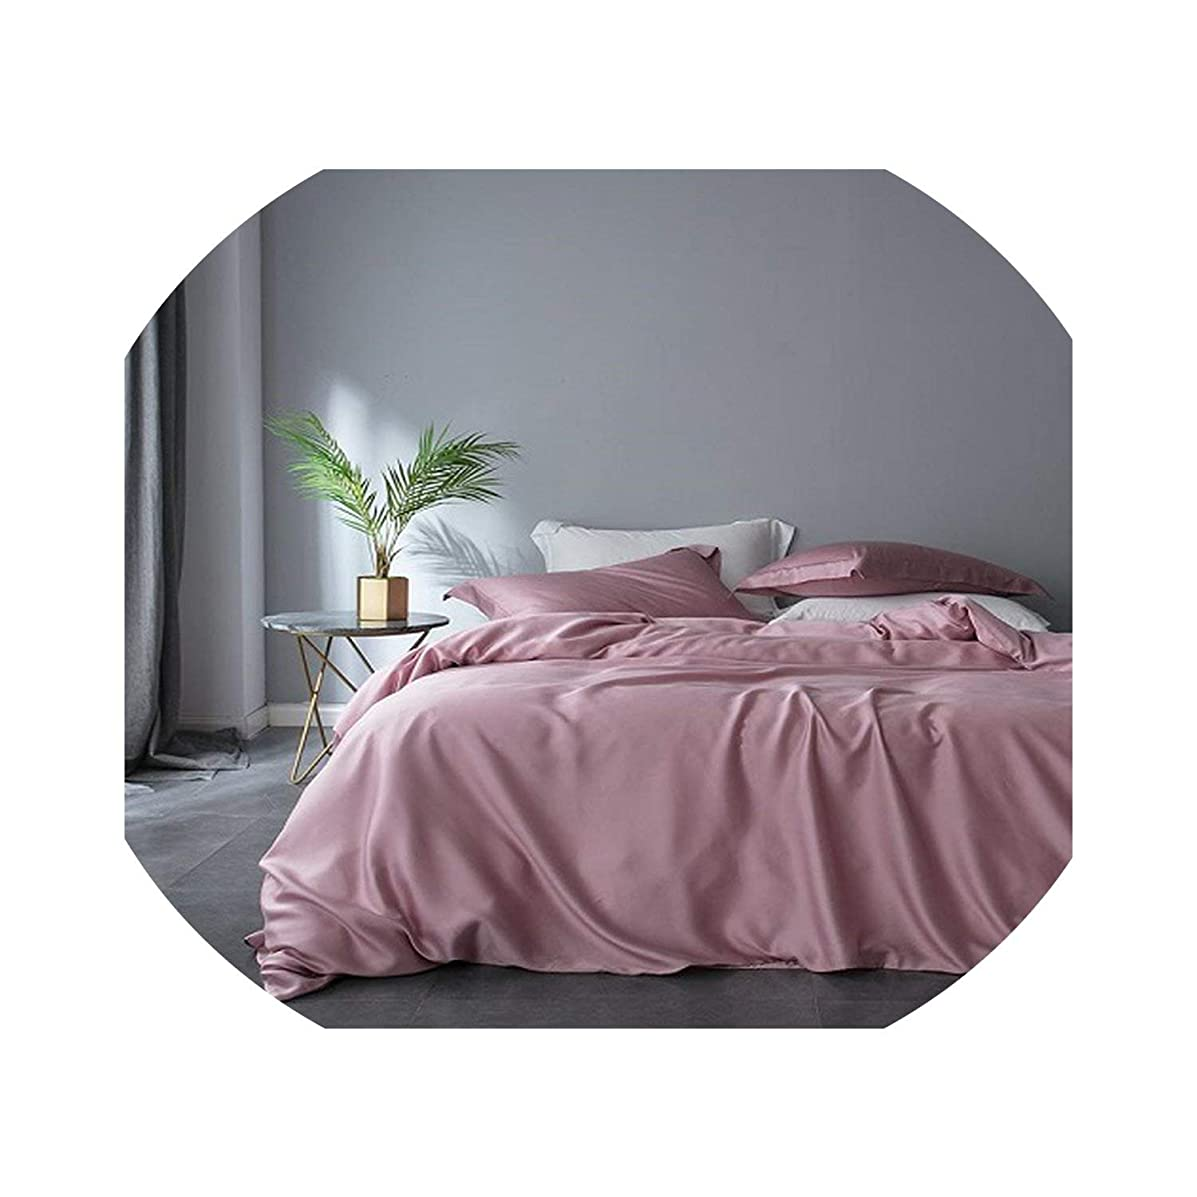 fantasticlife06 Pink Gray White Tencel Silk Soft Bedding Set Luxury Bed Sheet Queen King Size Fitted Sheet Bed Set Duvet Cover,Bedding Set 2,Queen Size 4Pcs,Bed Sheet Style